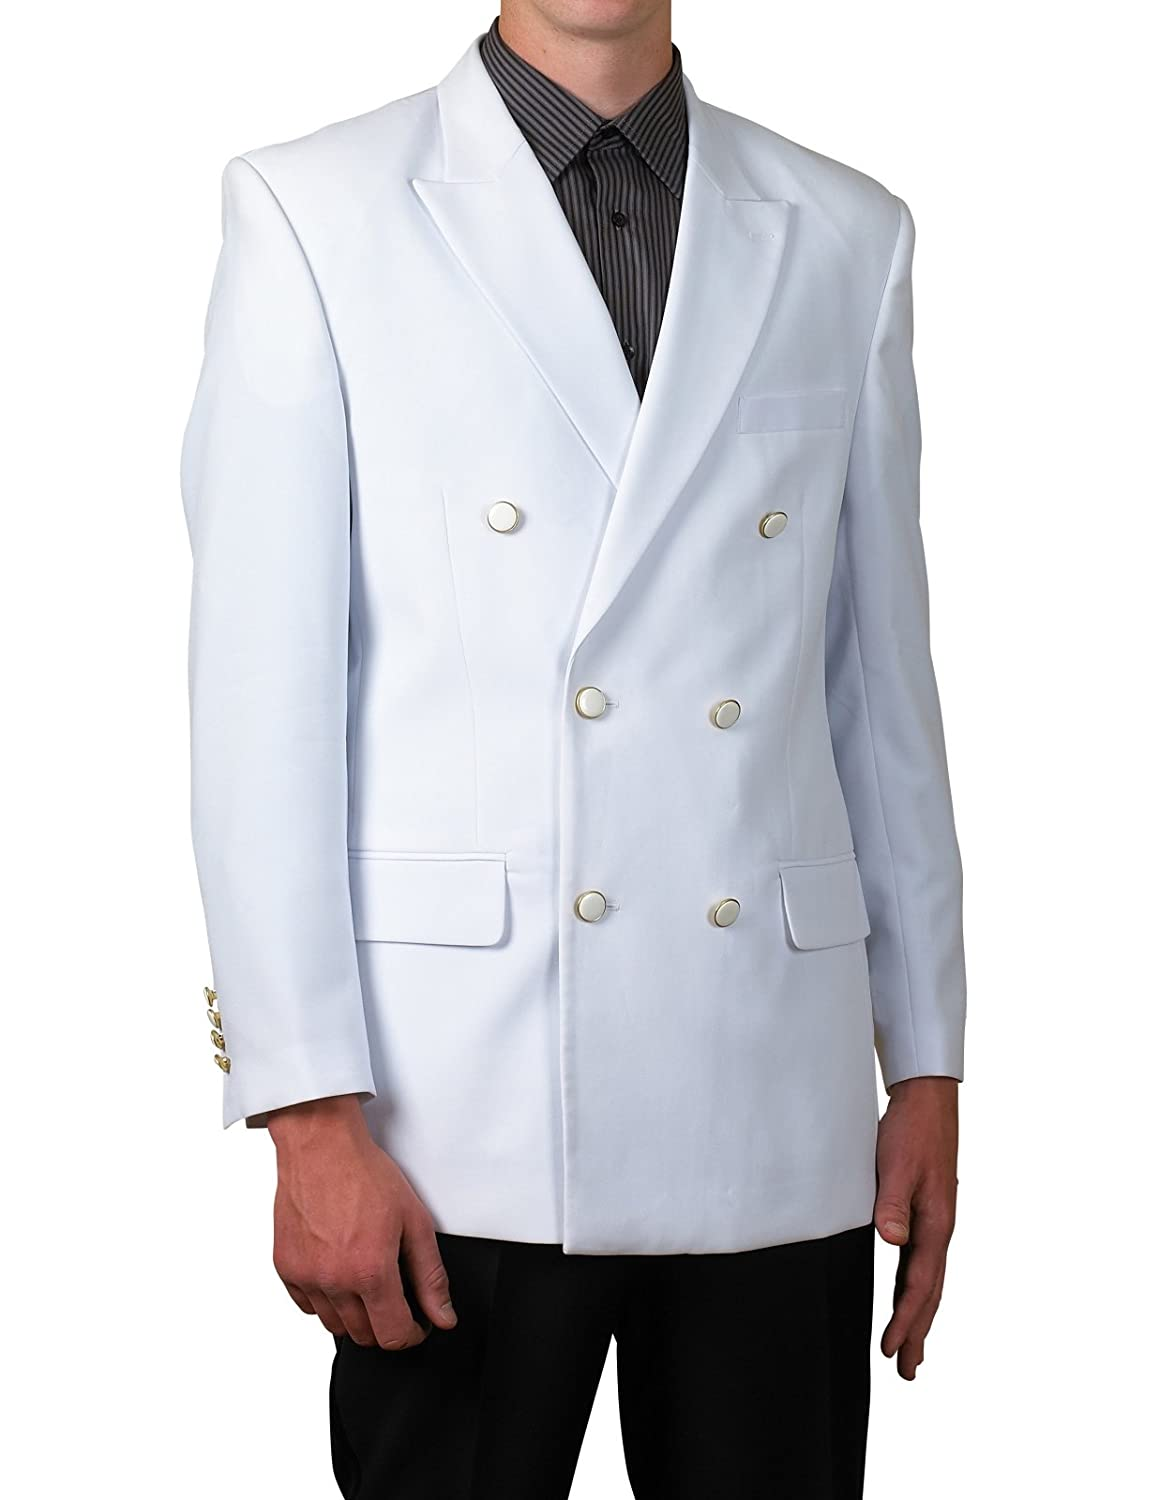 New Mens White Double Breasted Dinner Blazer Suit Jacket